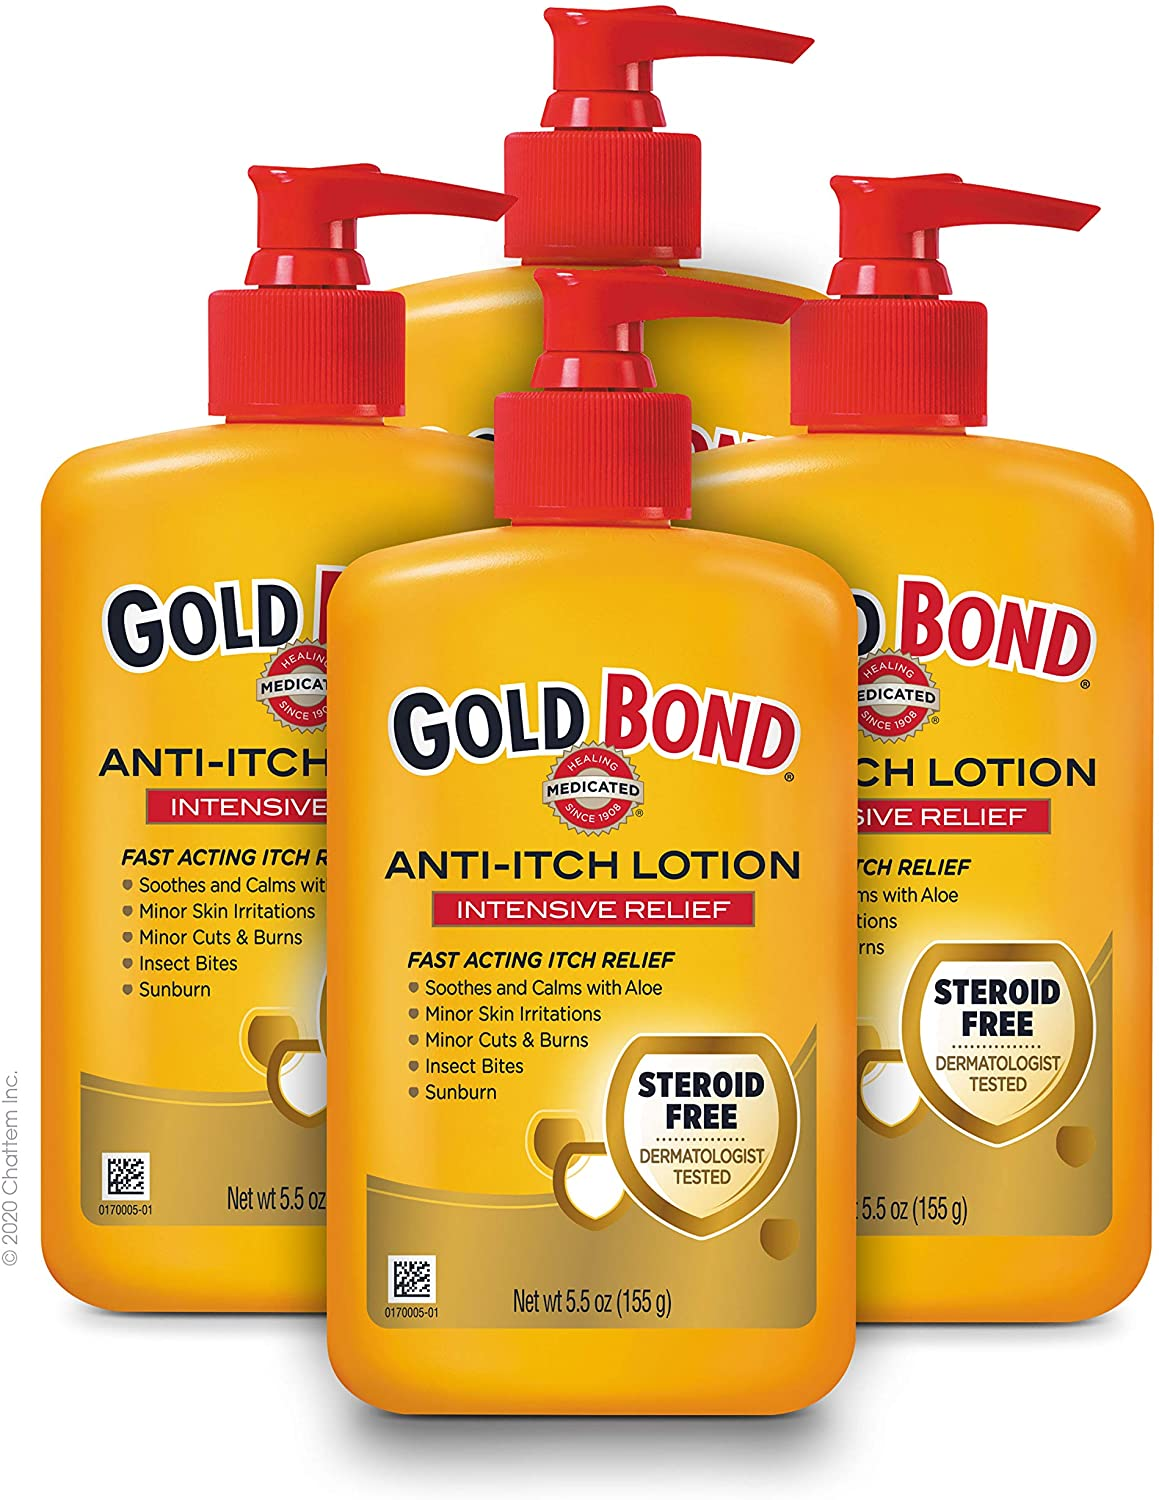 Gold Bond Medicated Anti-Itch Lotion, Intensive Relief from Dry, Irritated Skin, 5.5 oz. (Pack of 4)